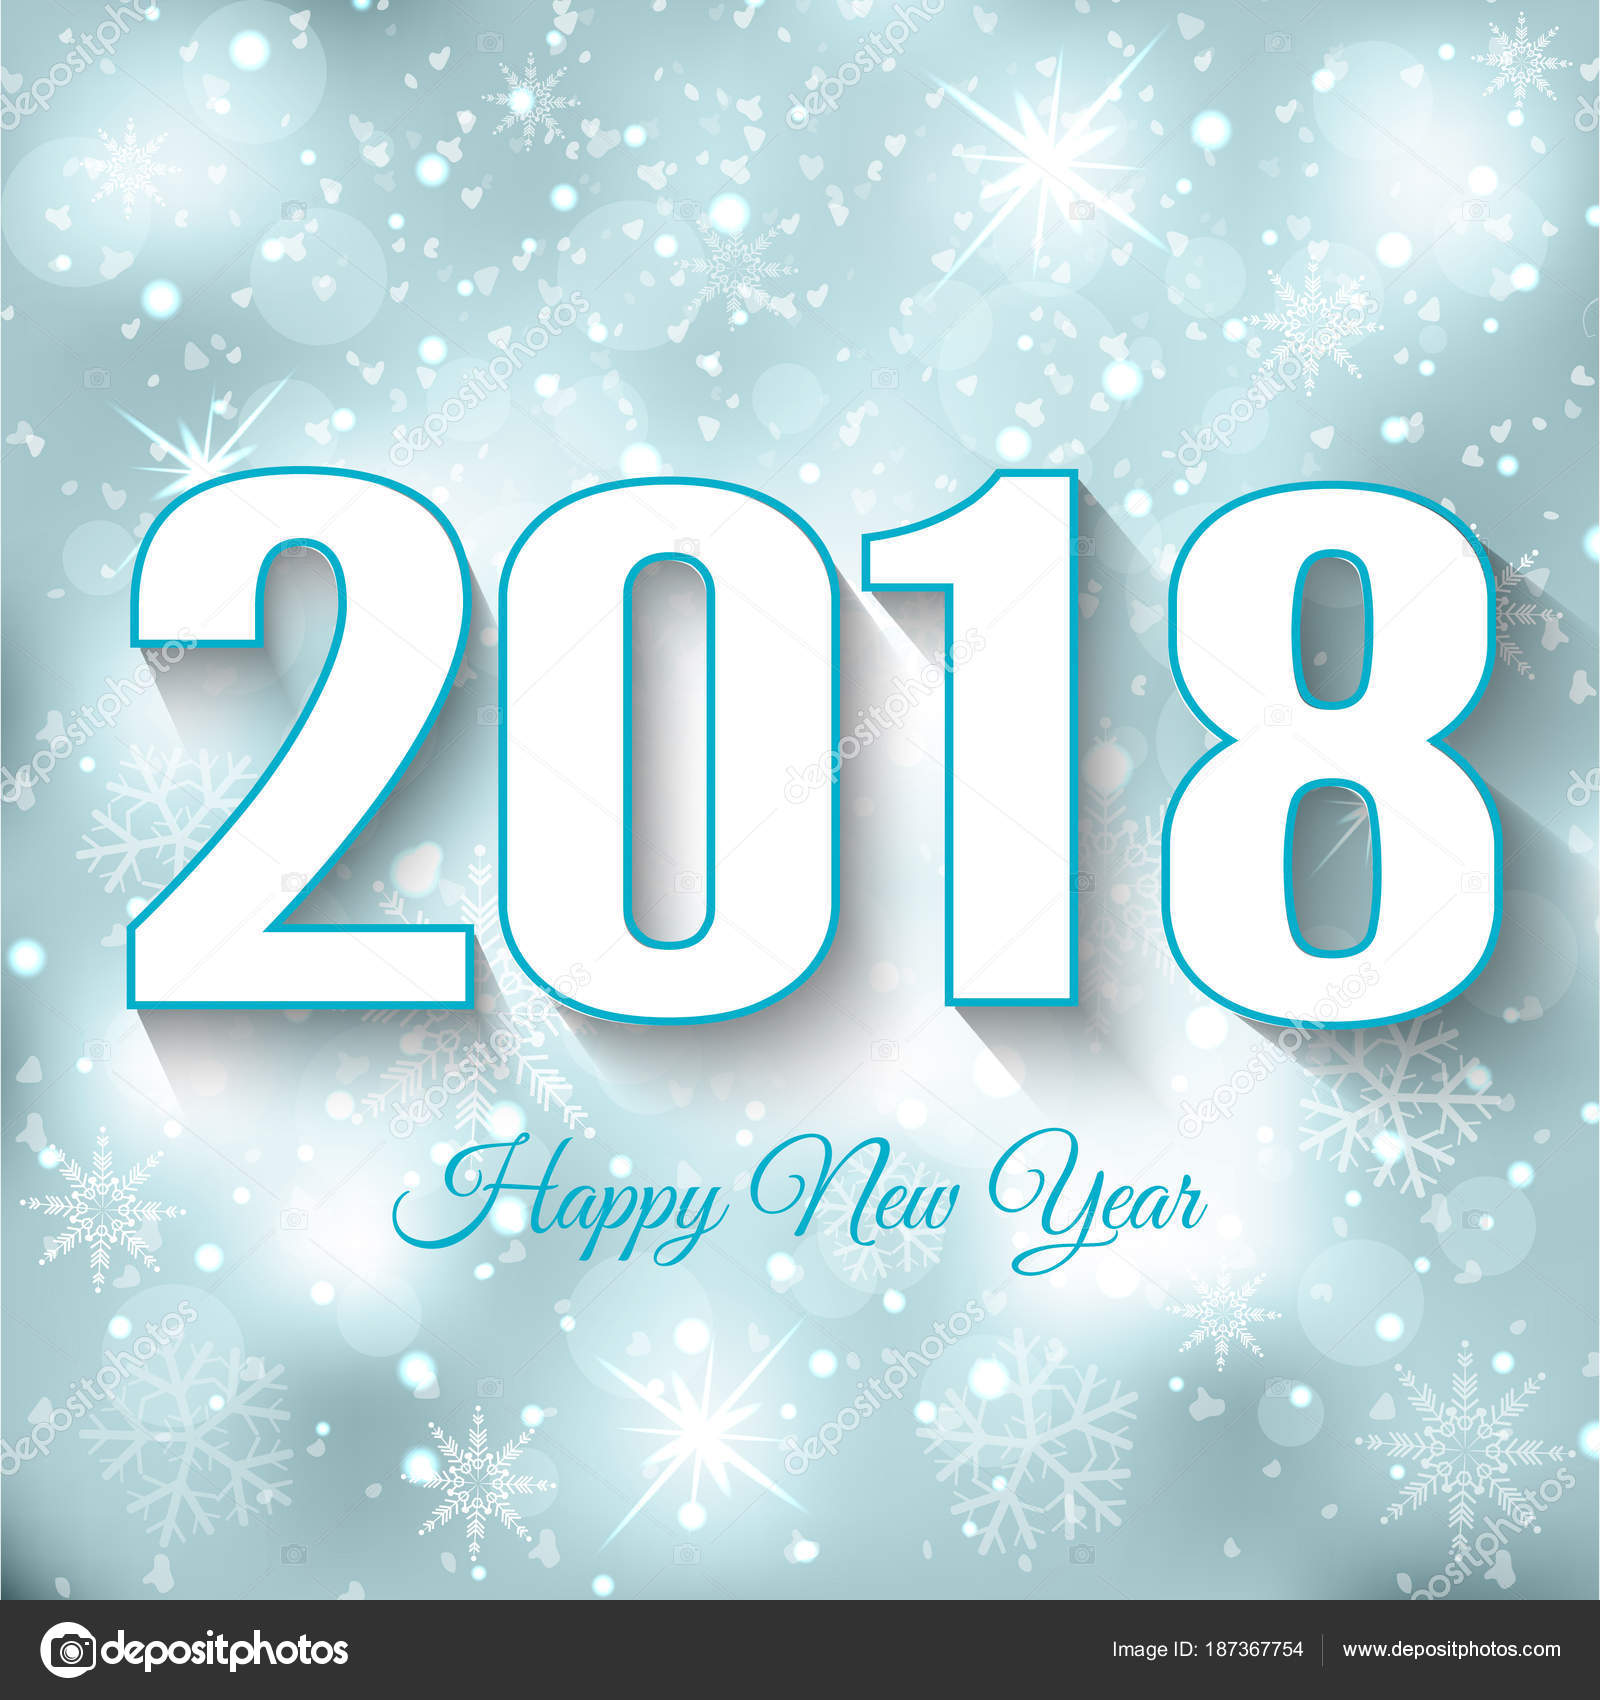 happy new year 2018 abstract design winter background with snow stock vector